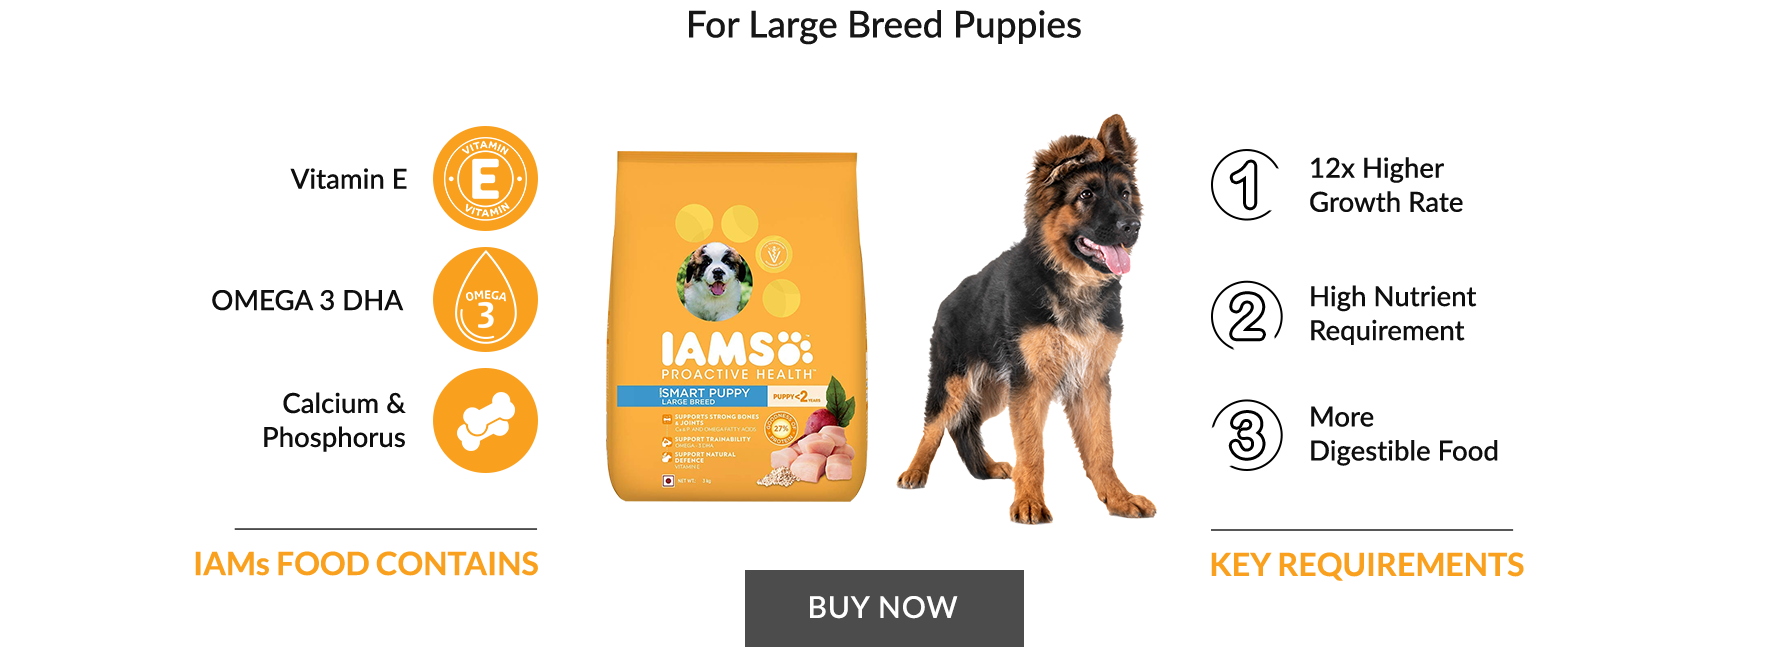 For Large breed puppies